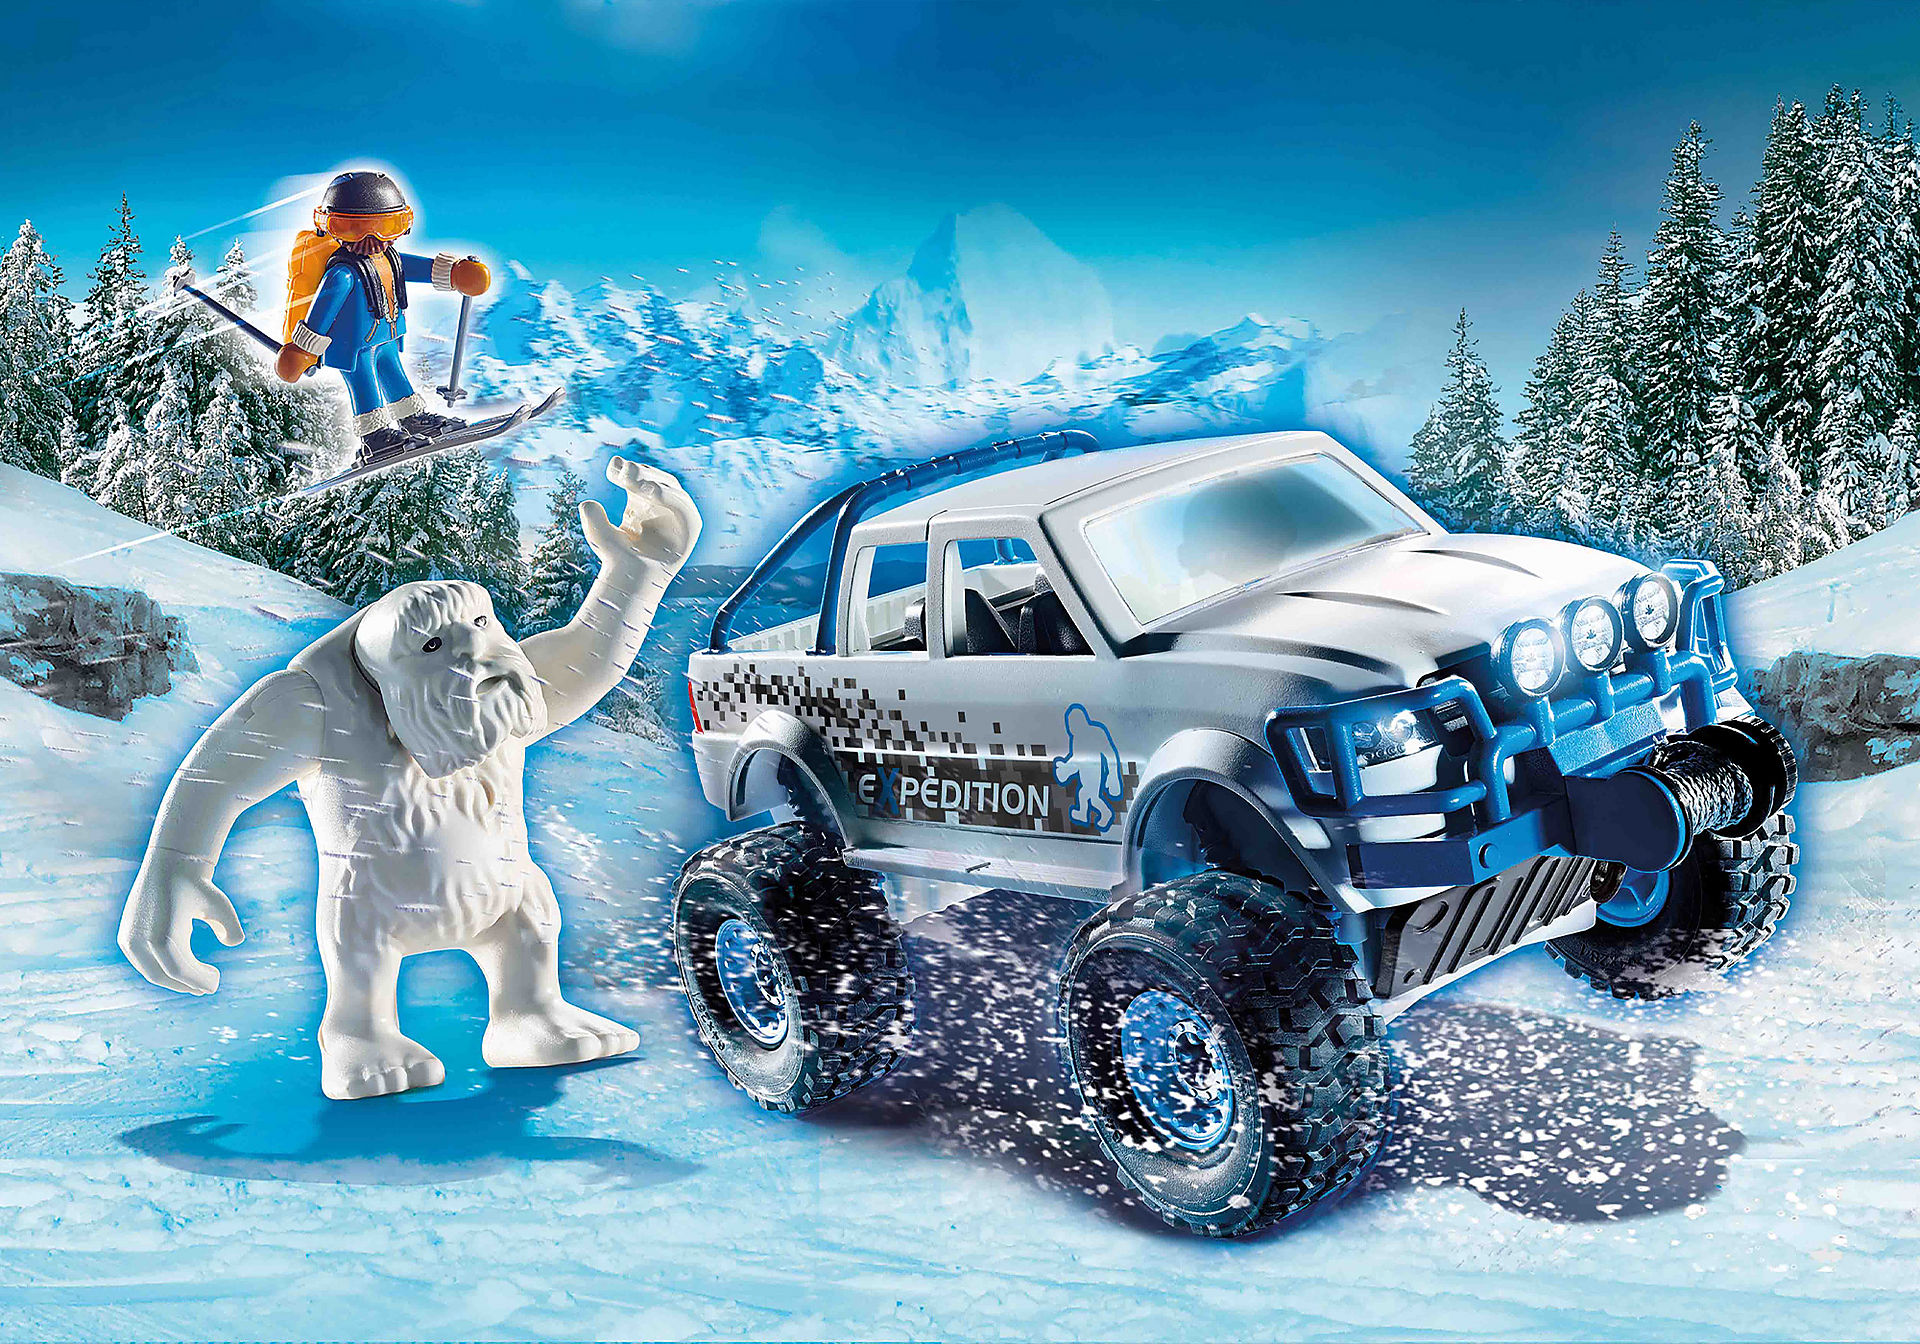 70532 Snow Beast Expedition zoom image1